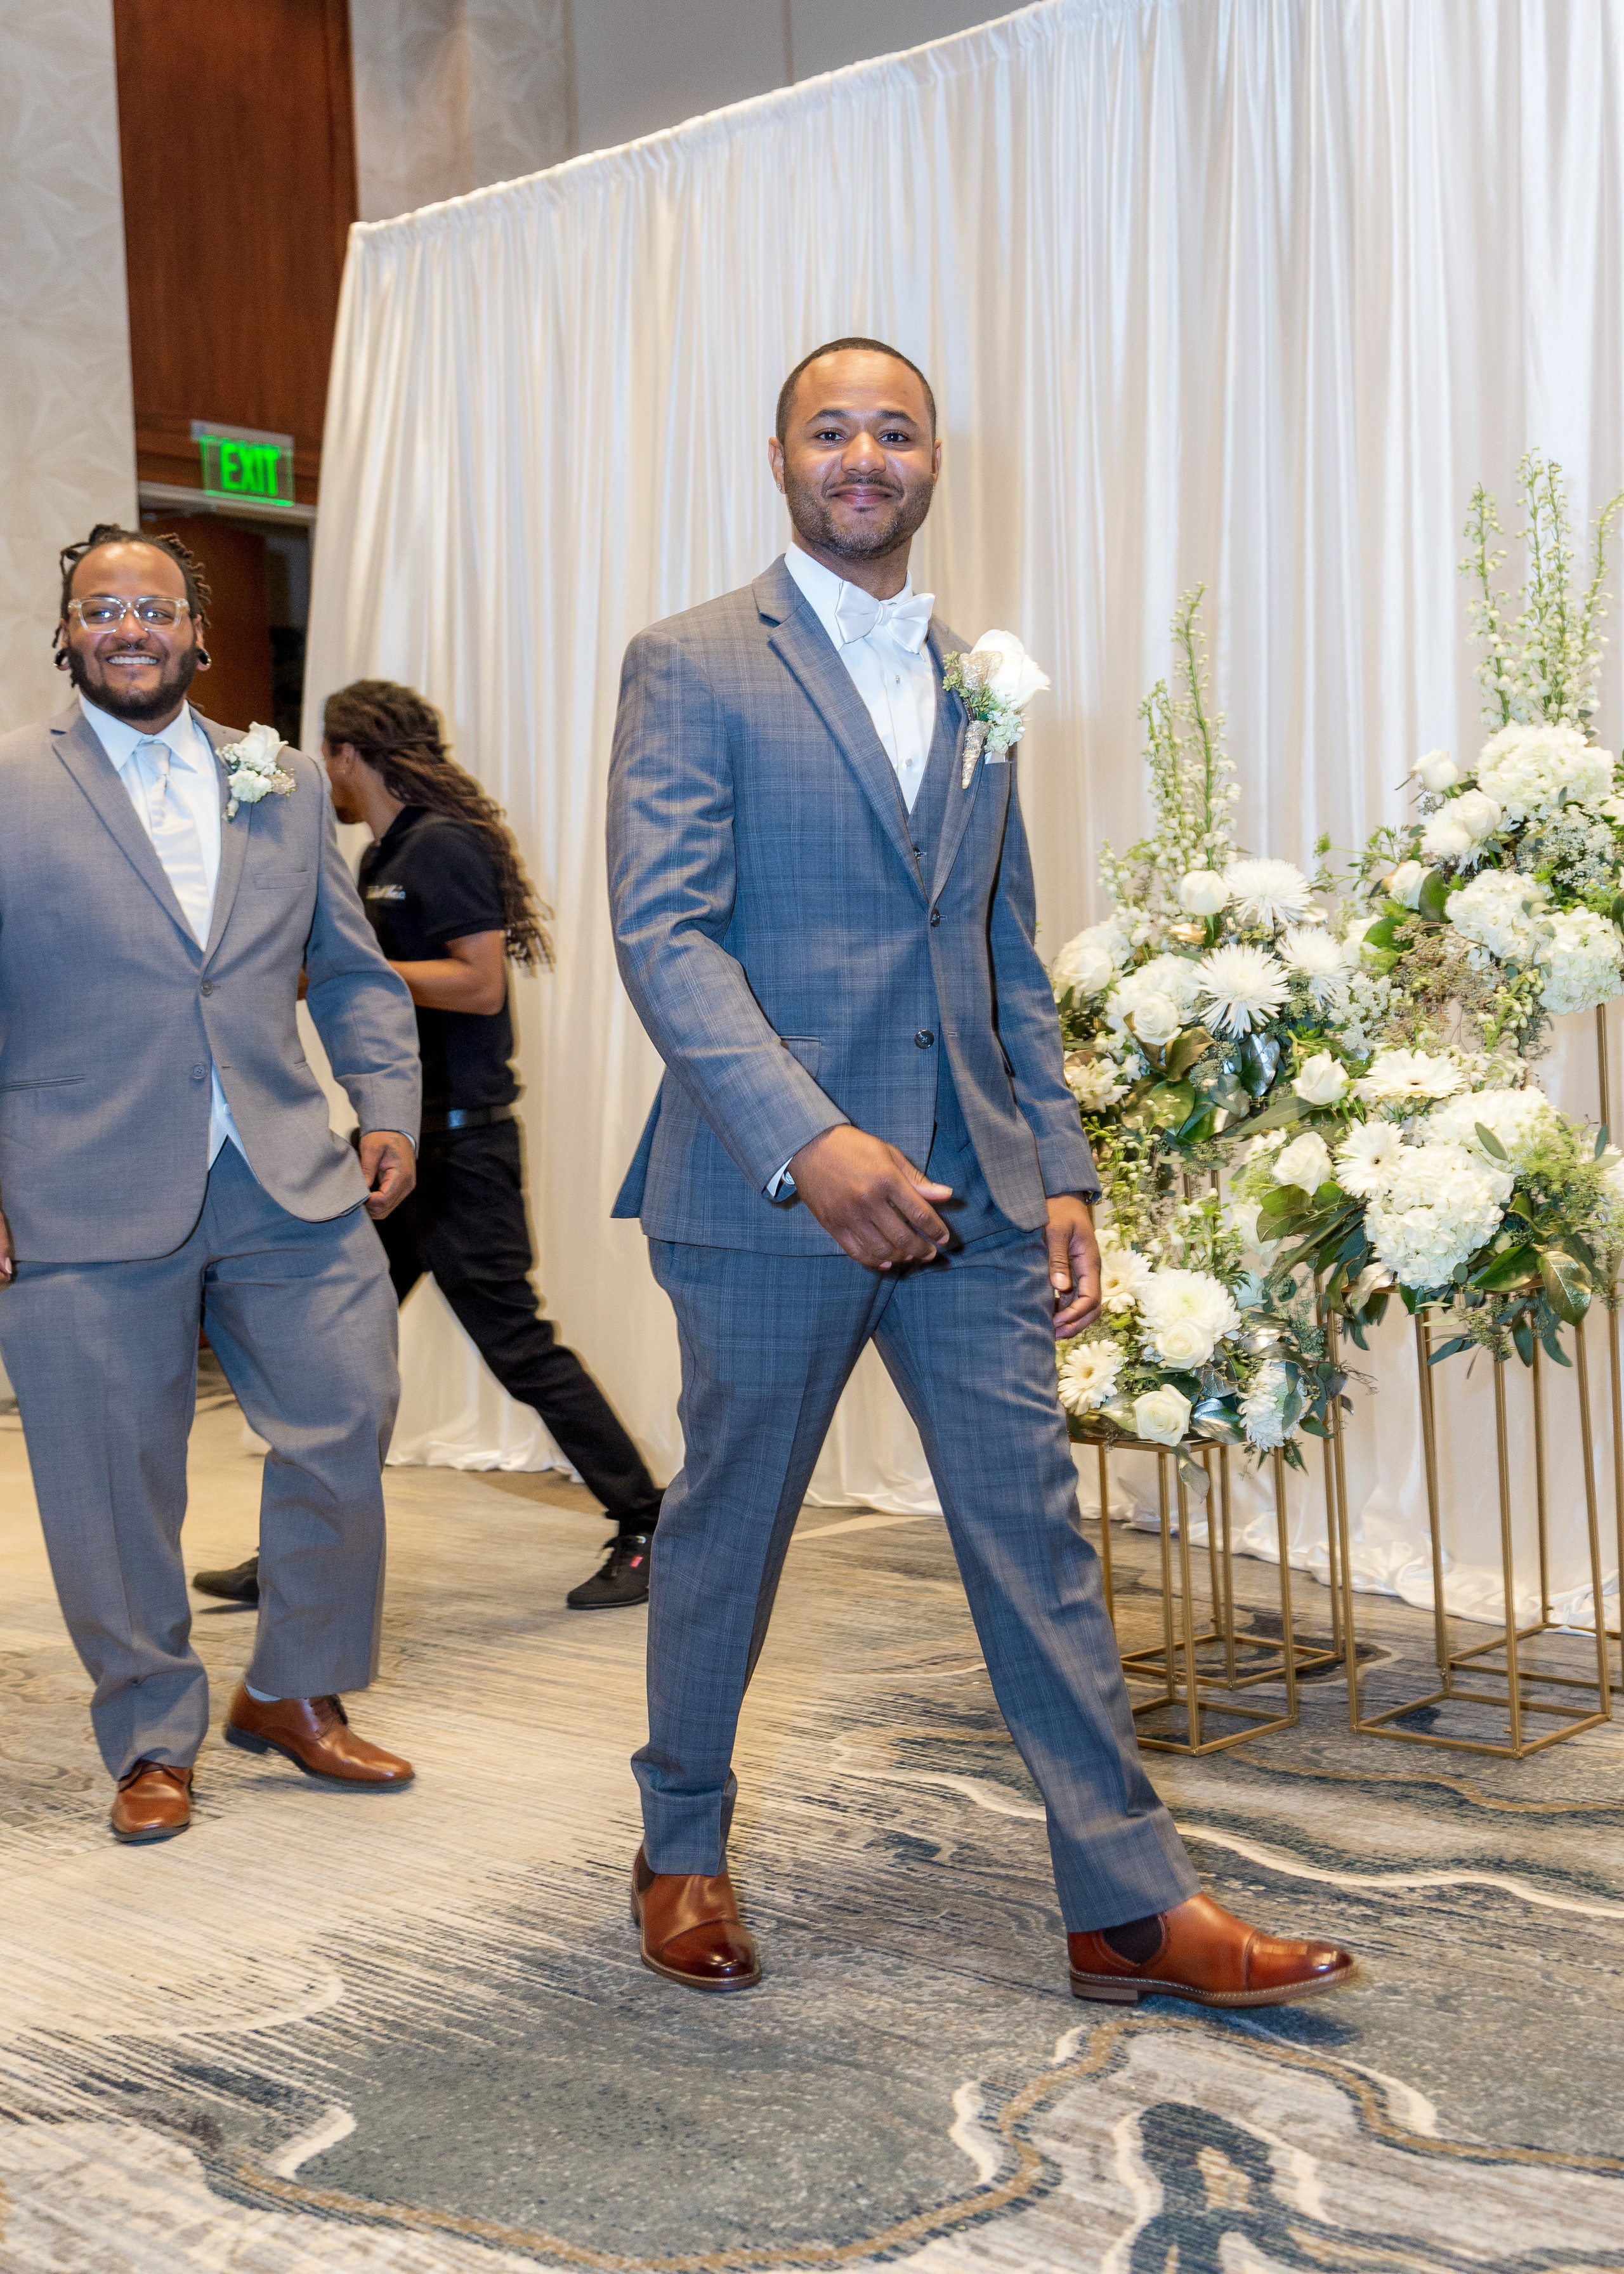 The groom walking to the alter with his best man during the wedding ceremony at the Hilton Main in Norfolk, Virginia.